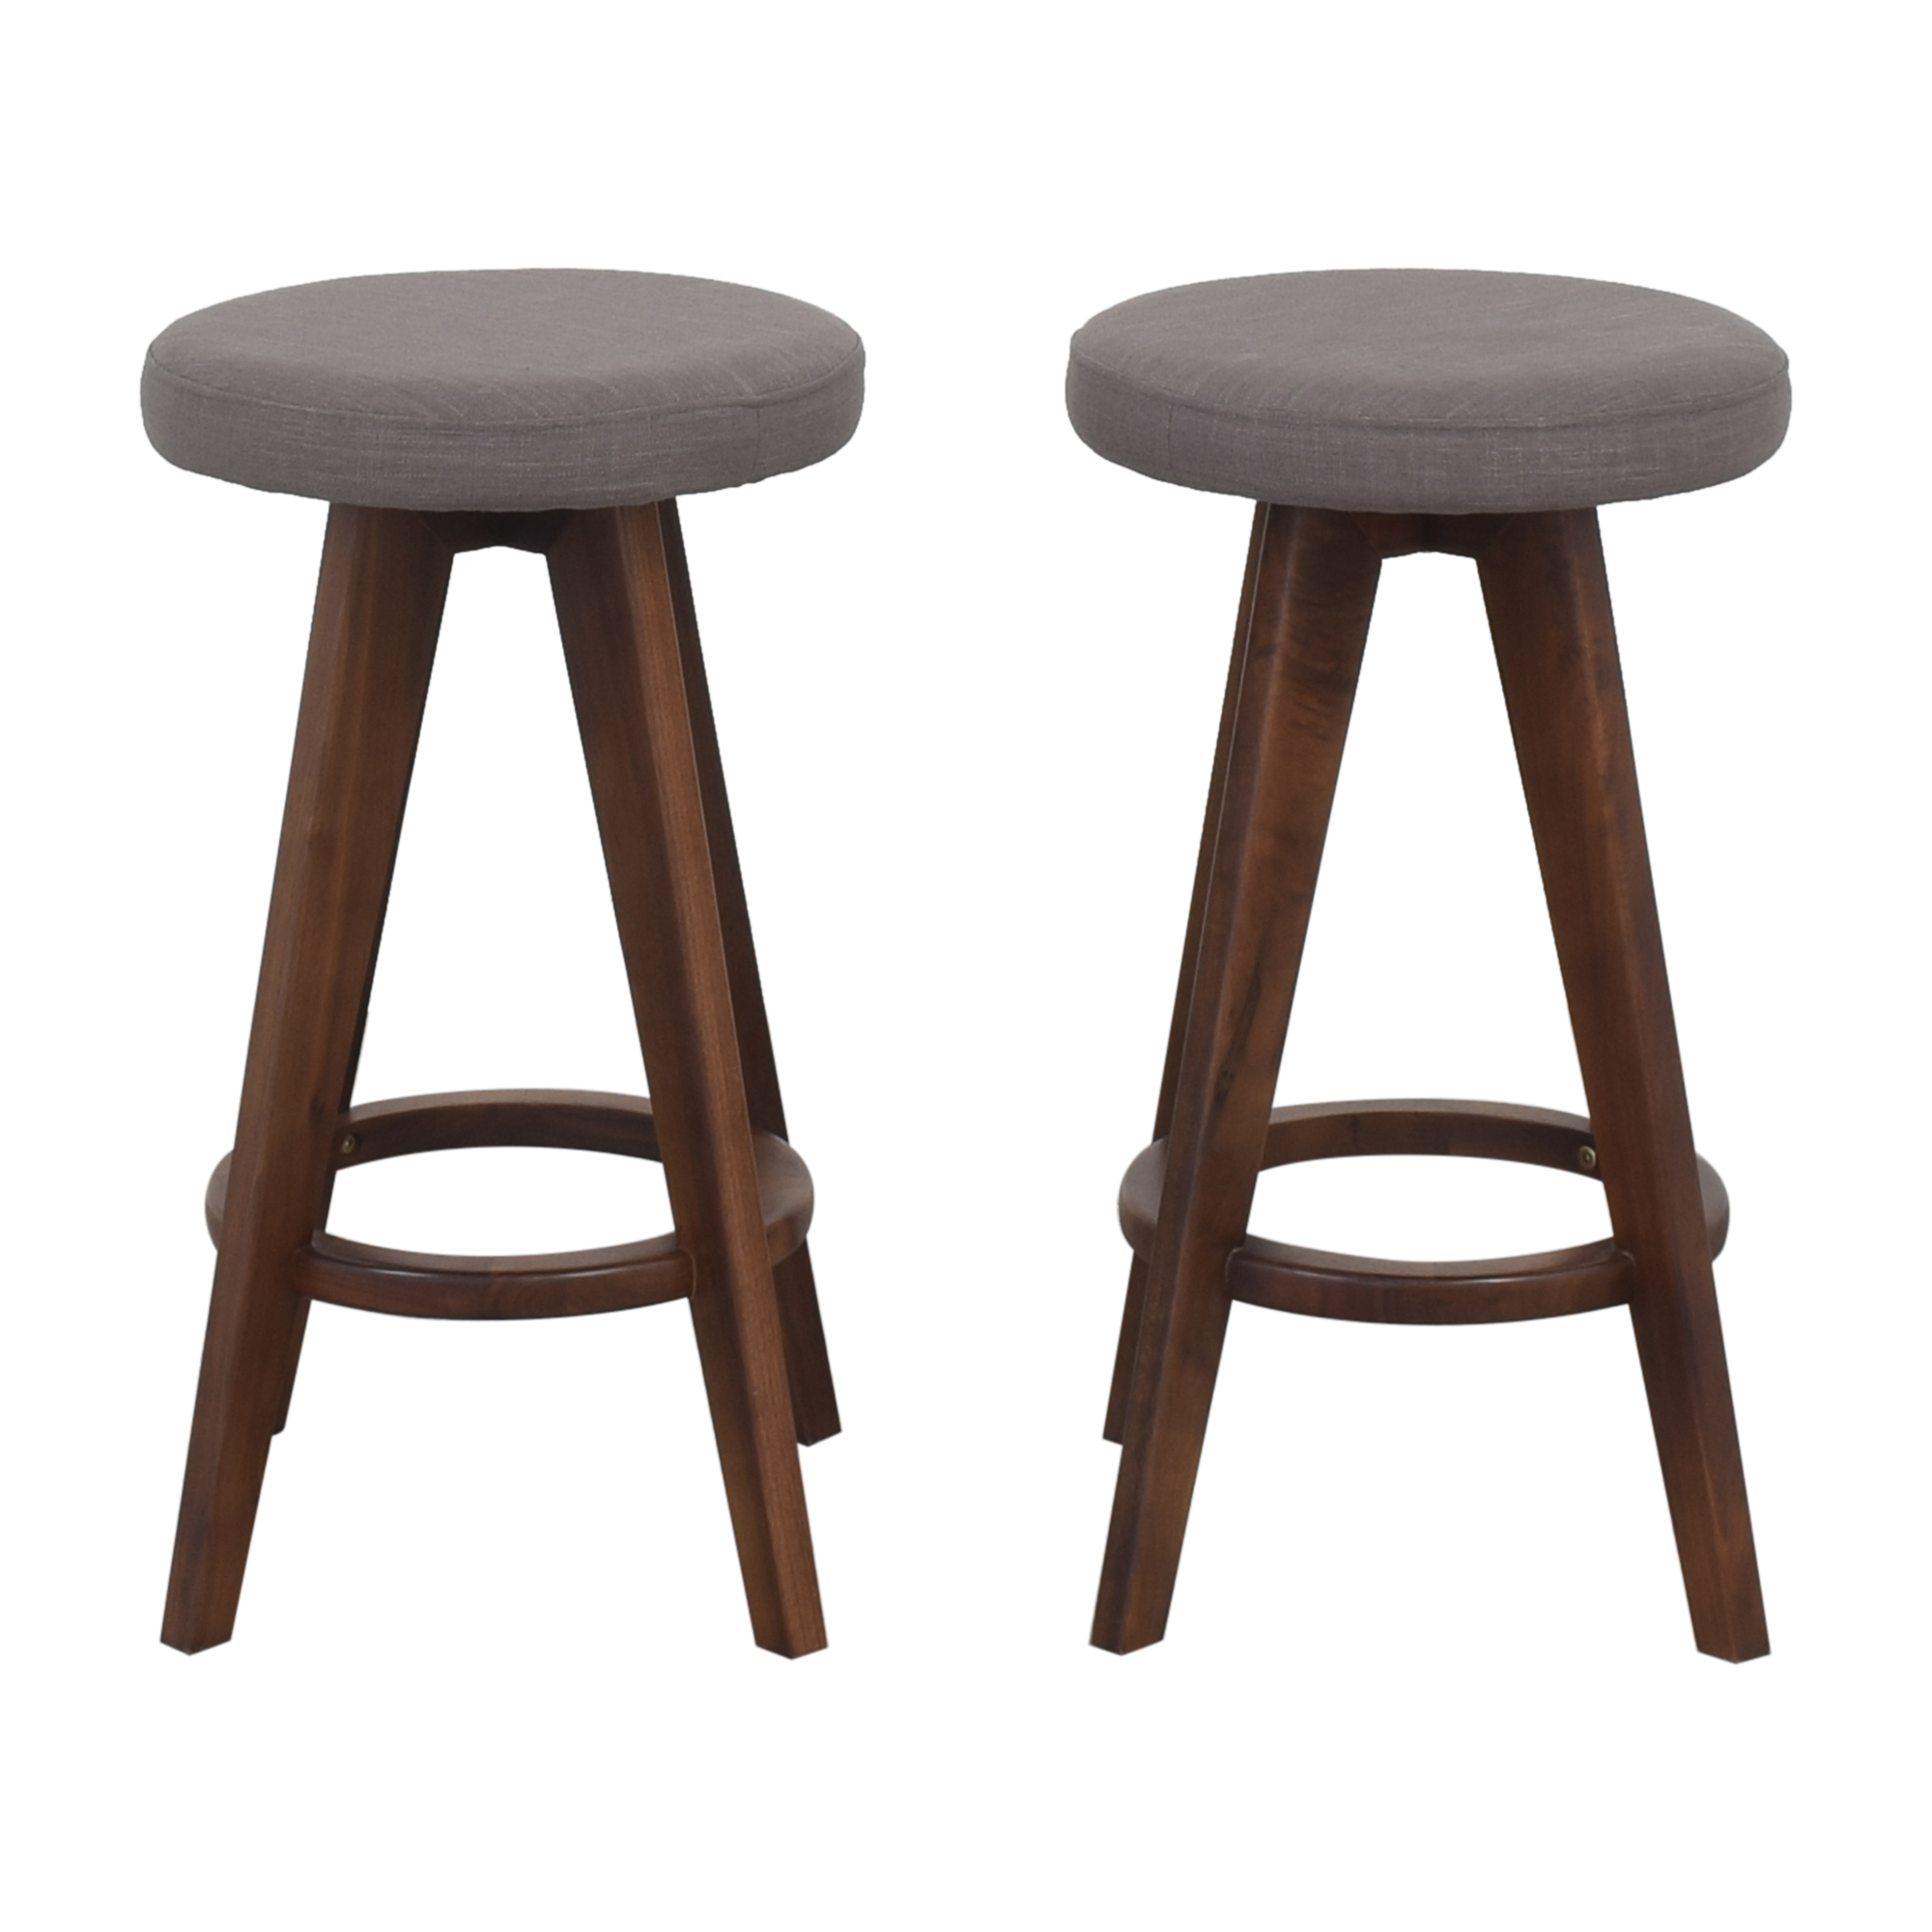 Article Article Circo Bar Stools for sale